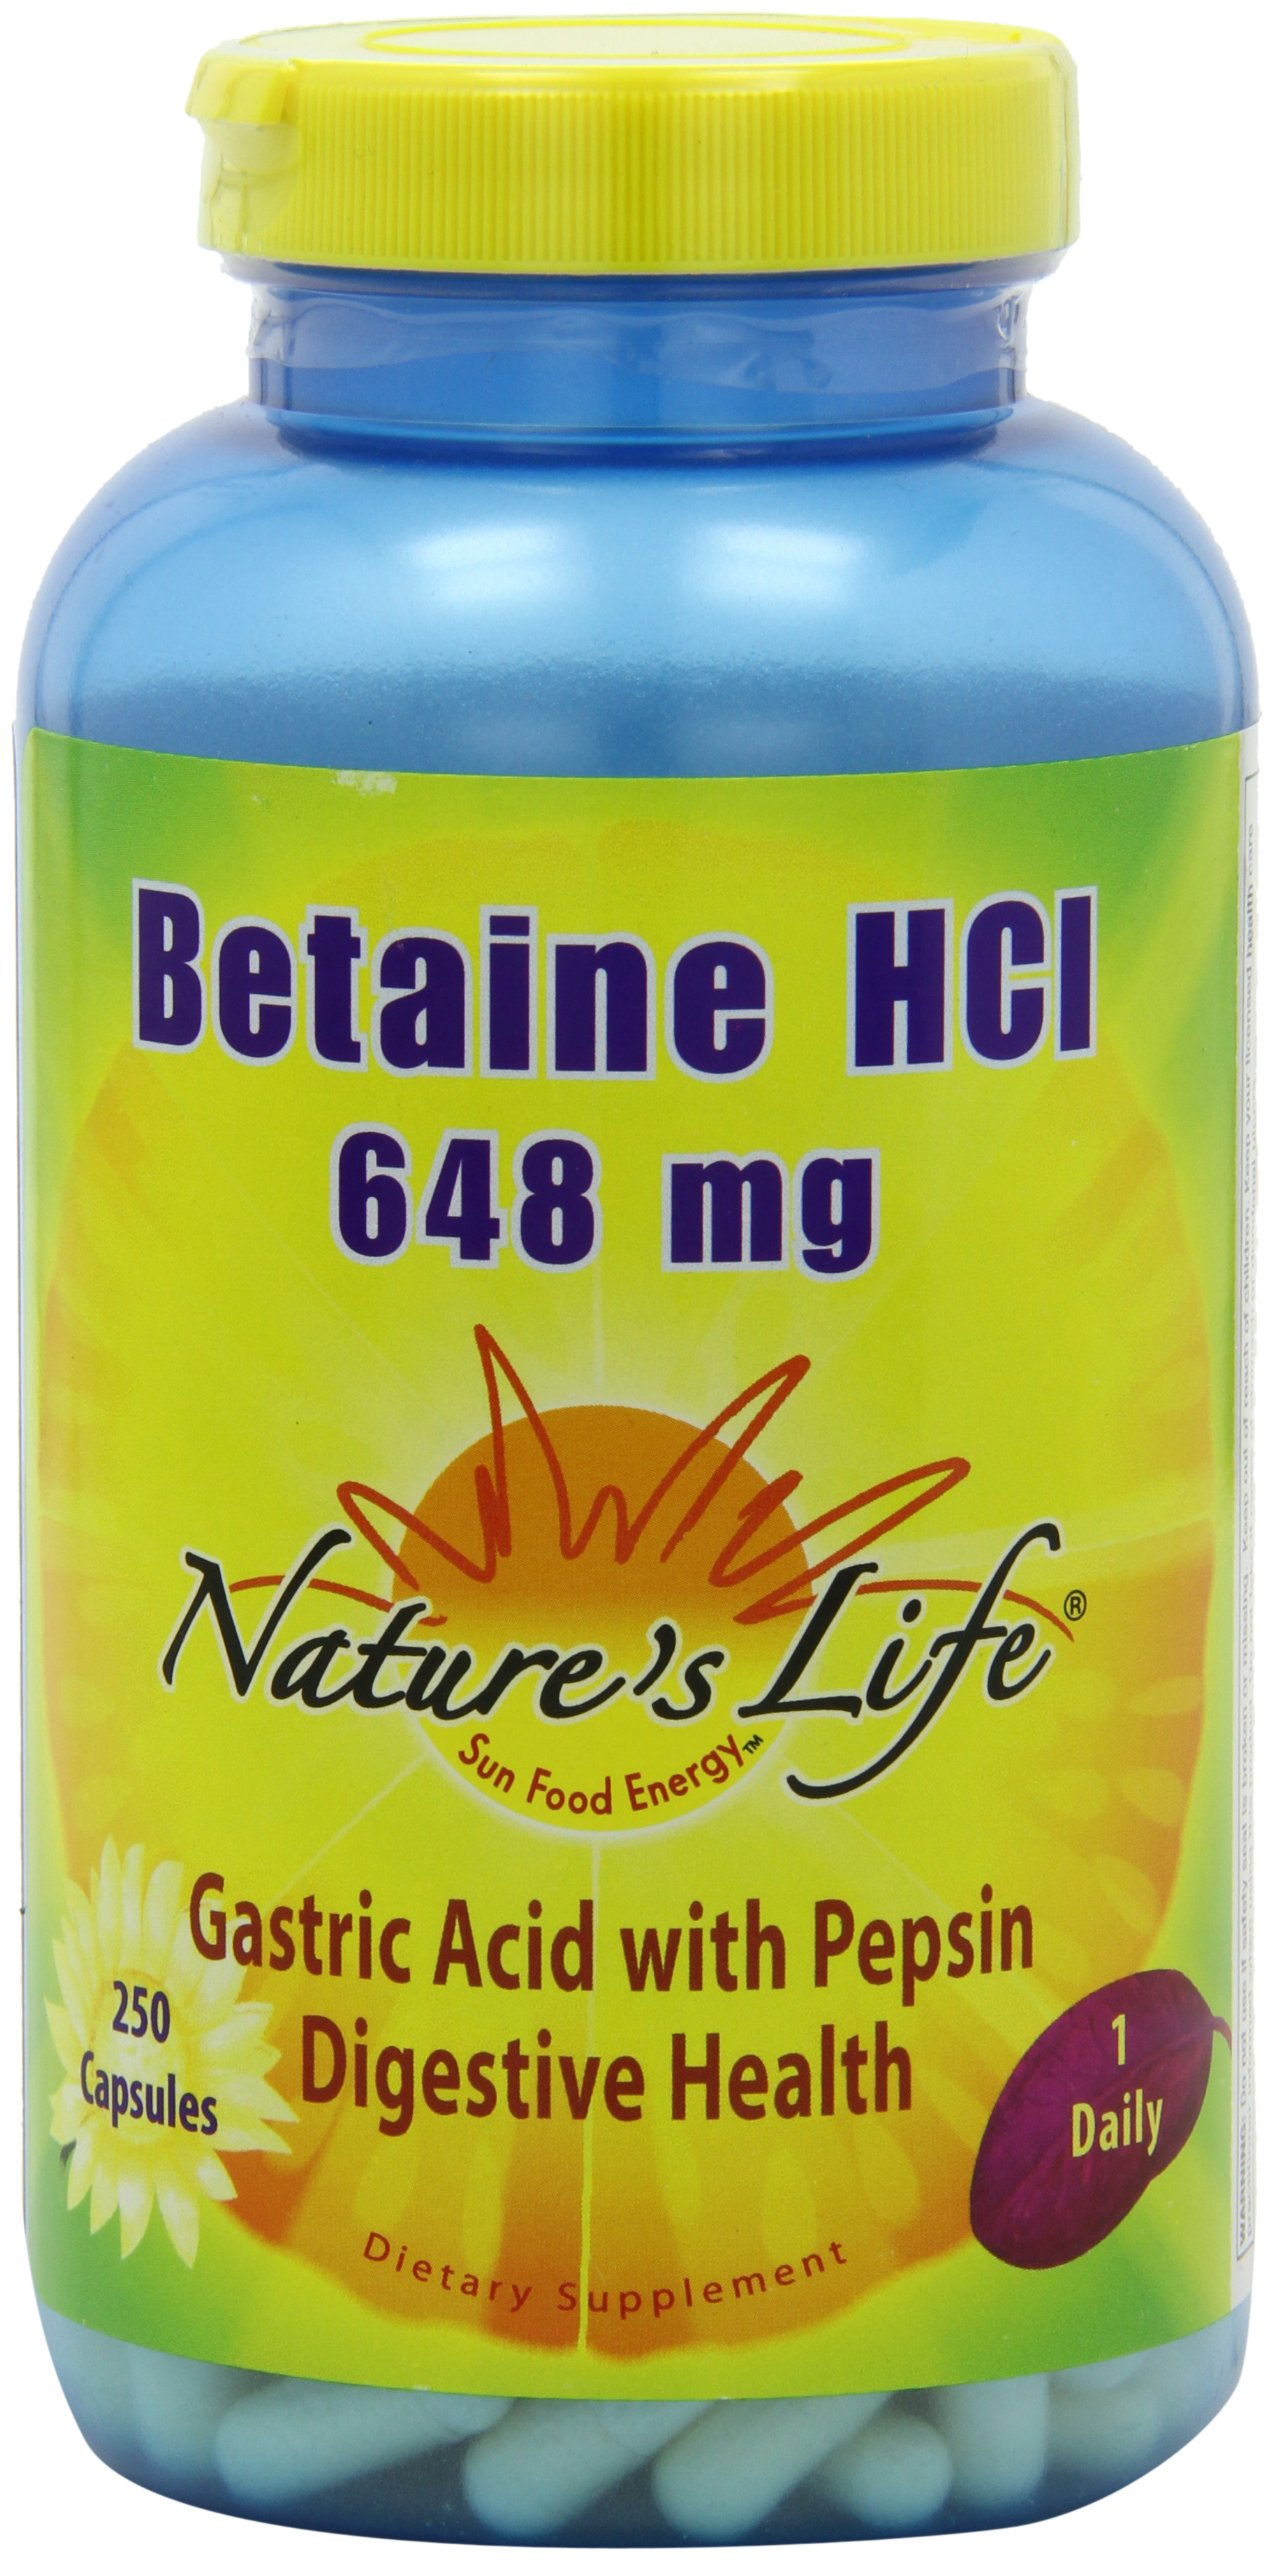 betaine hydrochloric acid hcl supplements